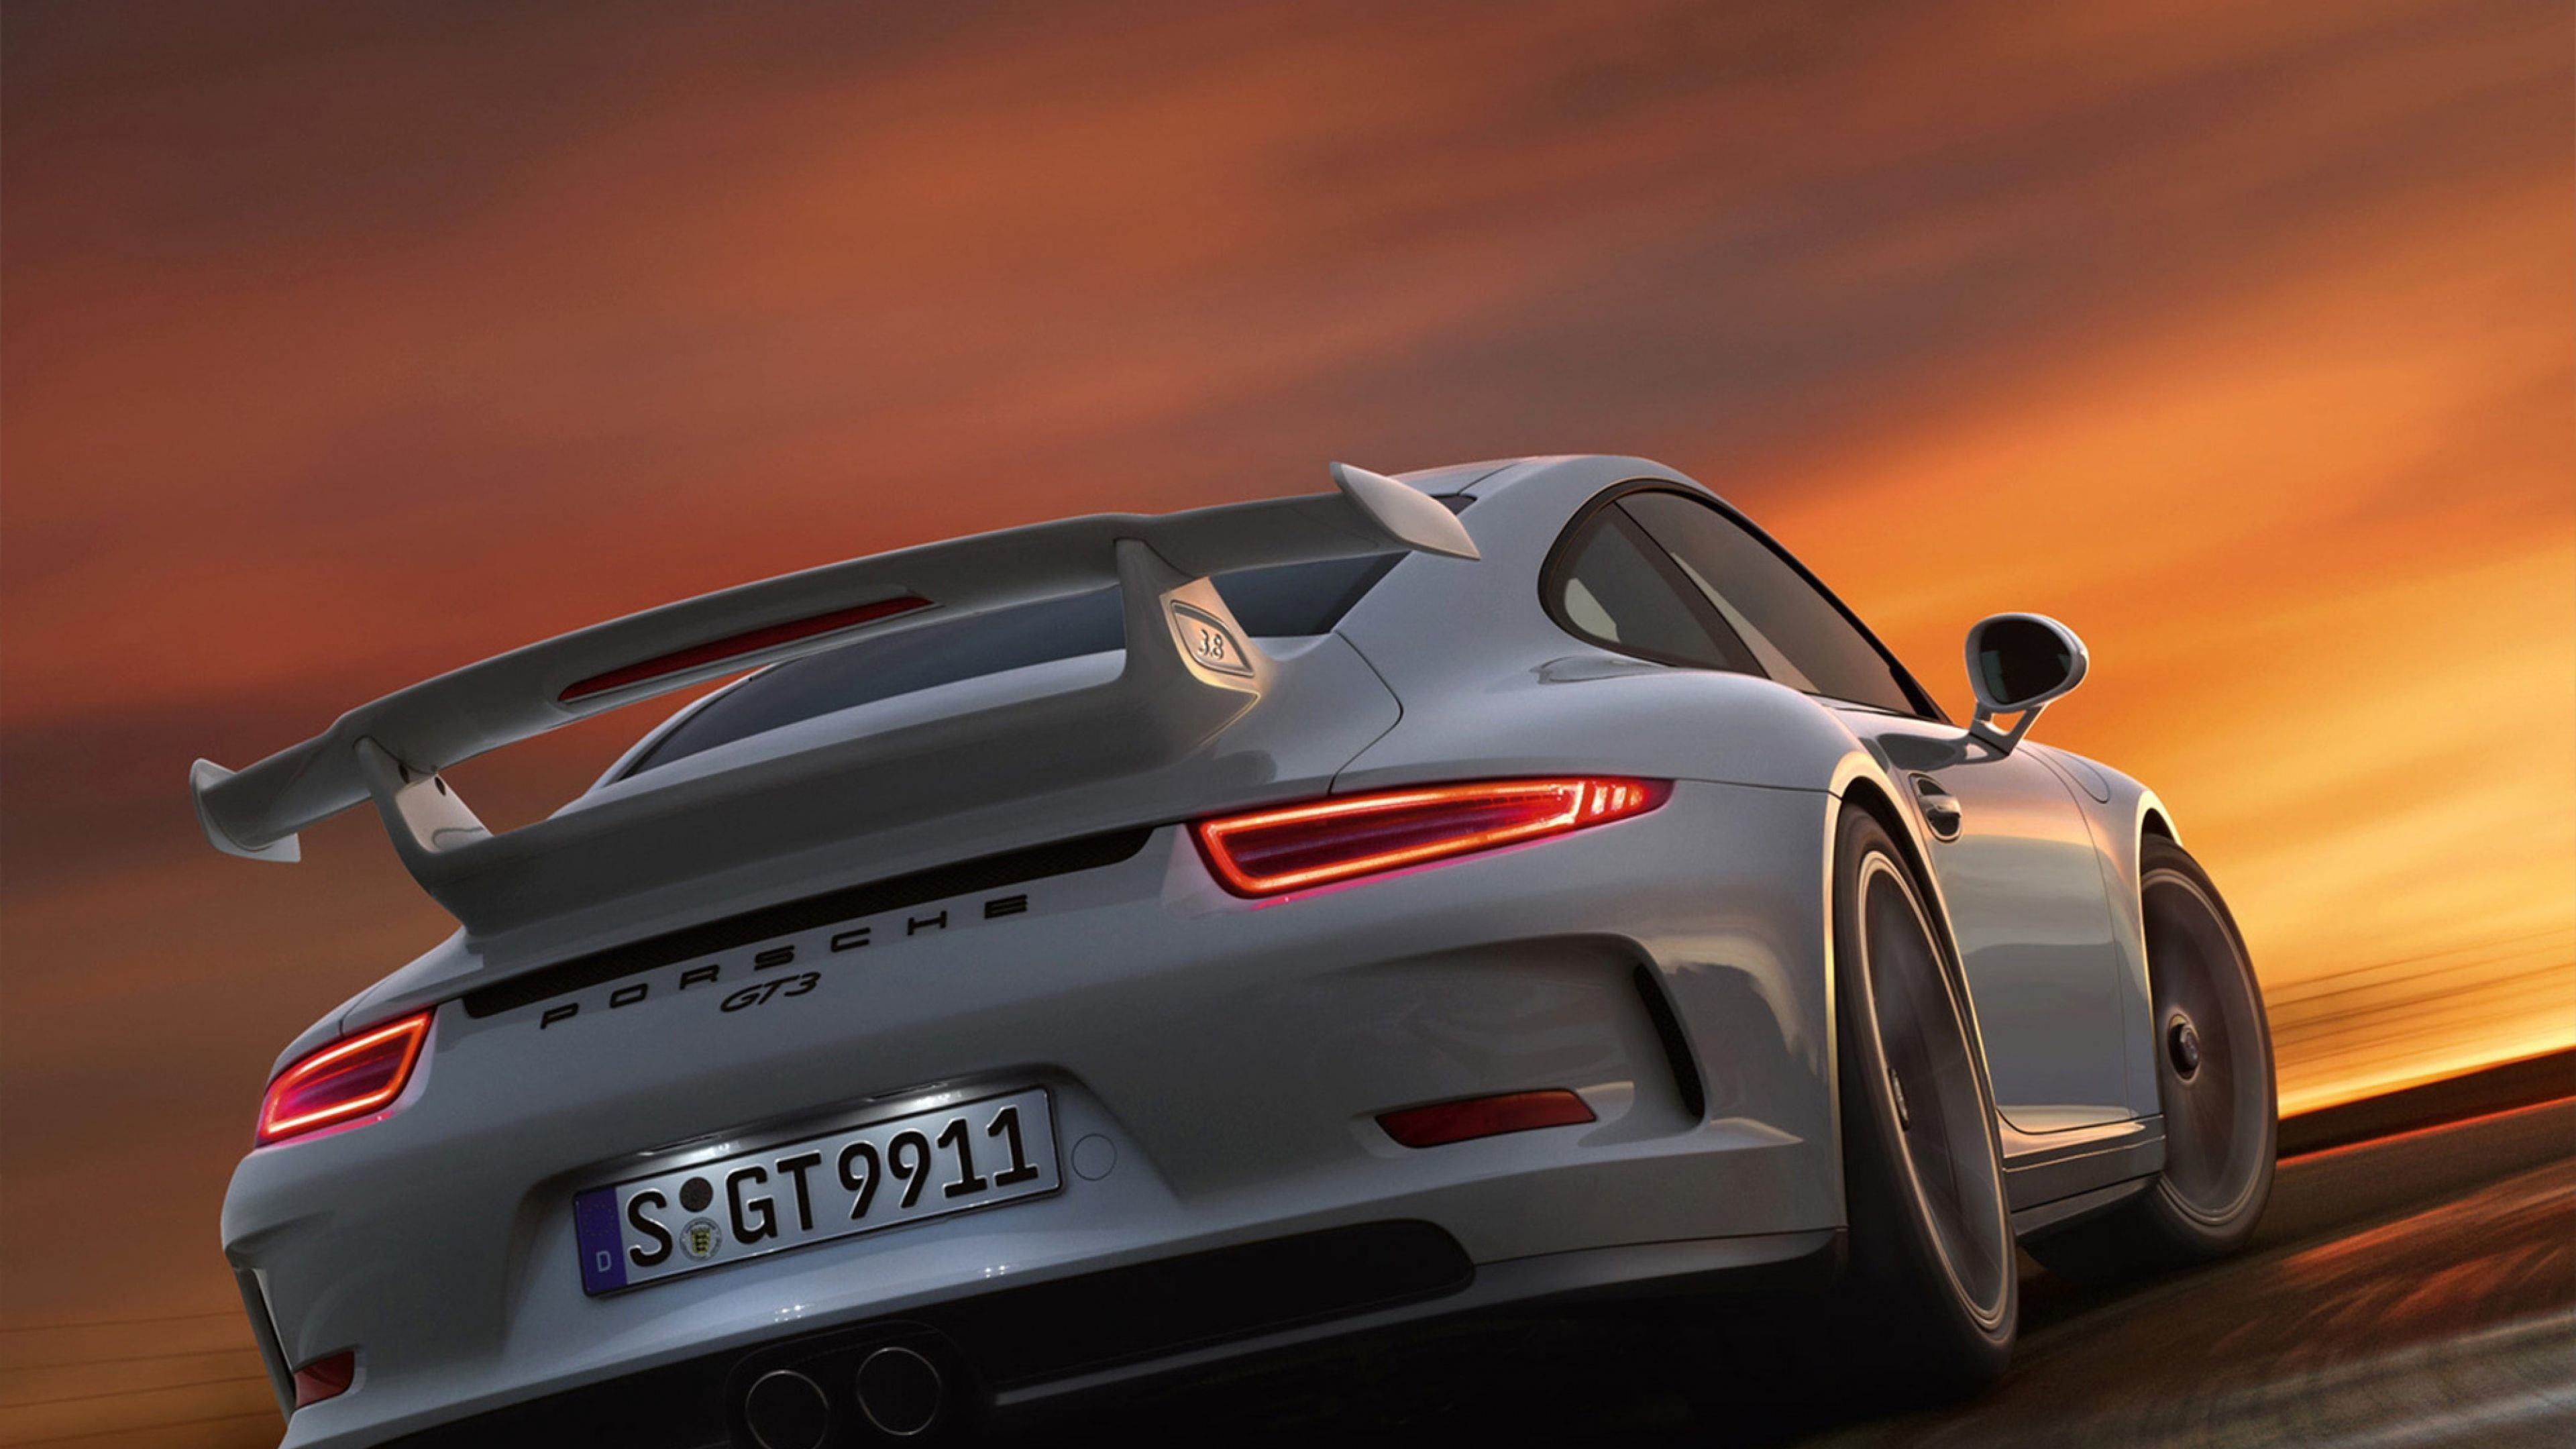 3840x2160 4K Ultra HD Porsche 911 gt3 Wallpapers HD, Desktop Backgrounds .